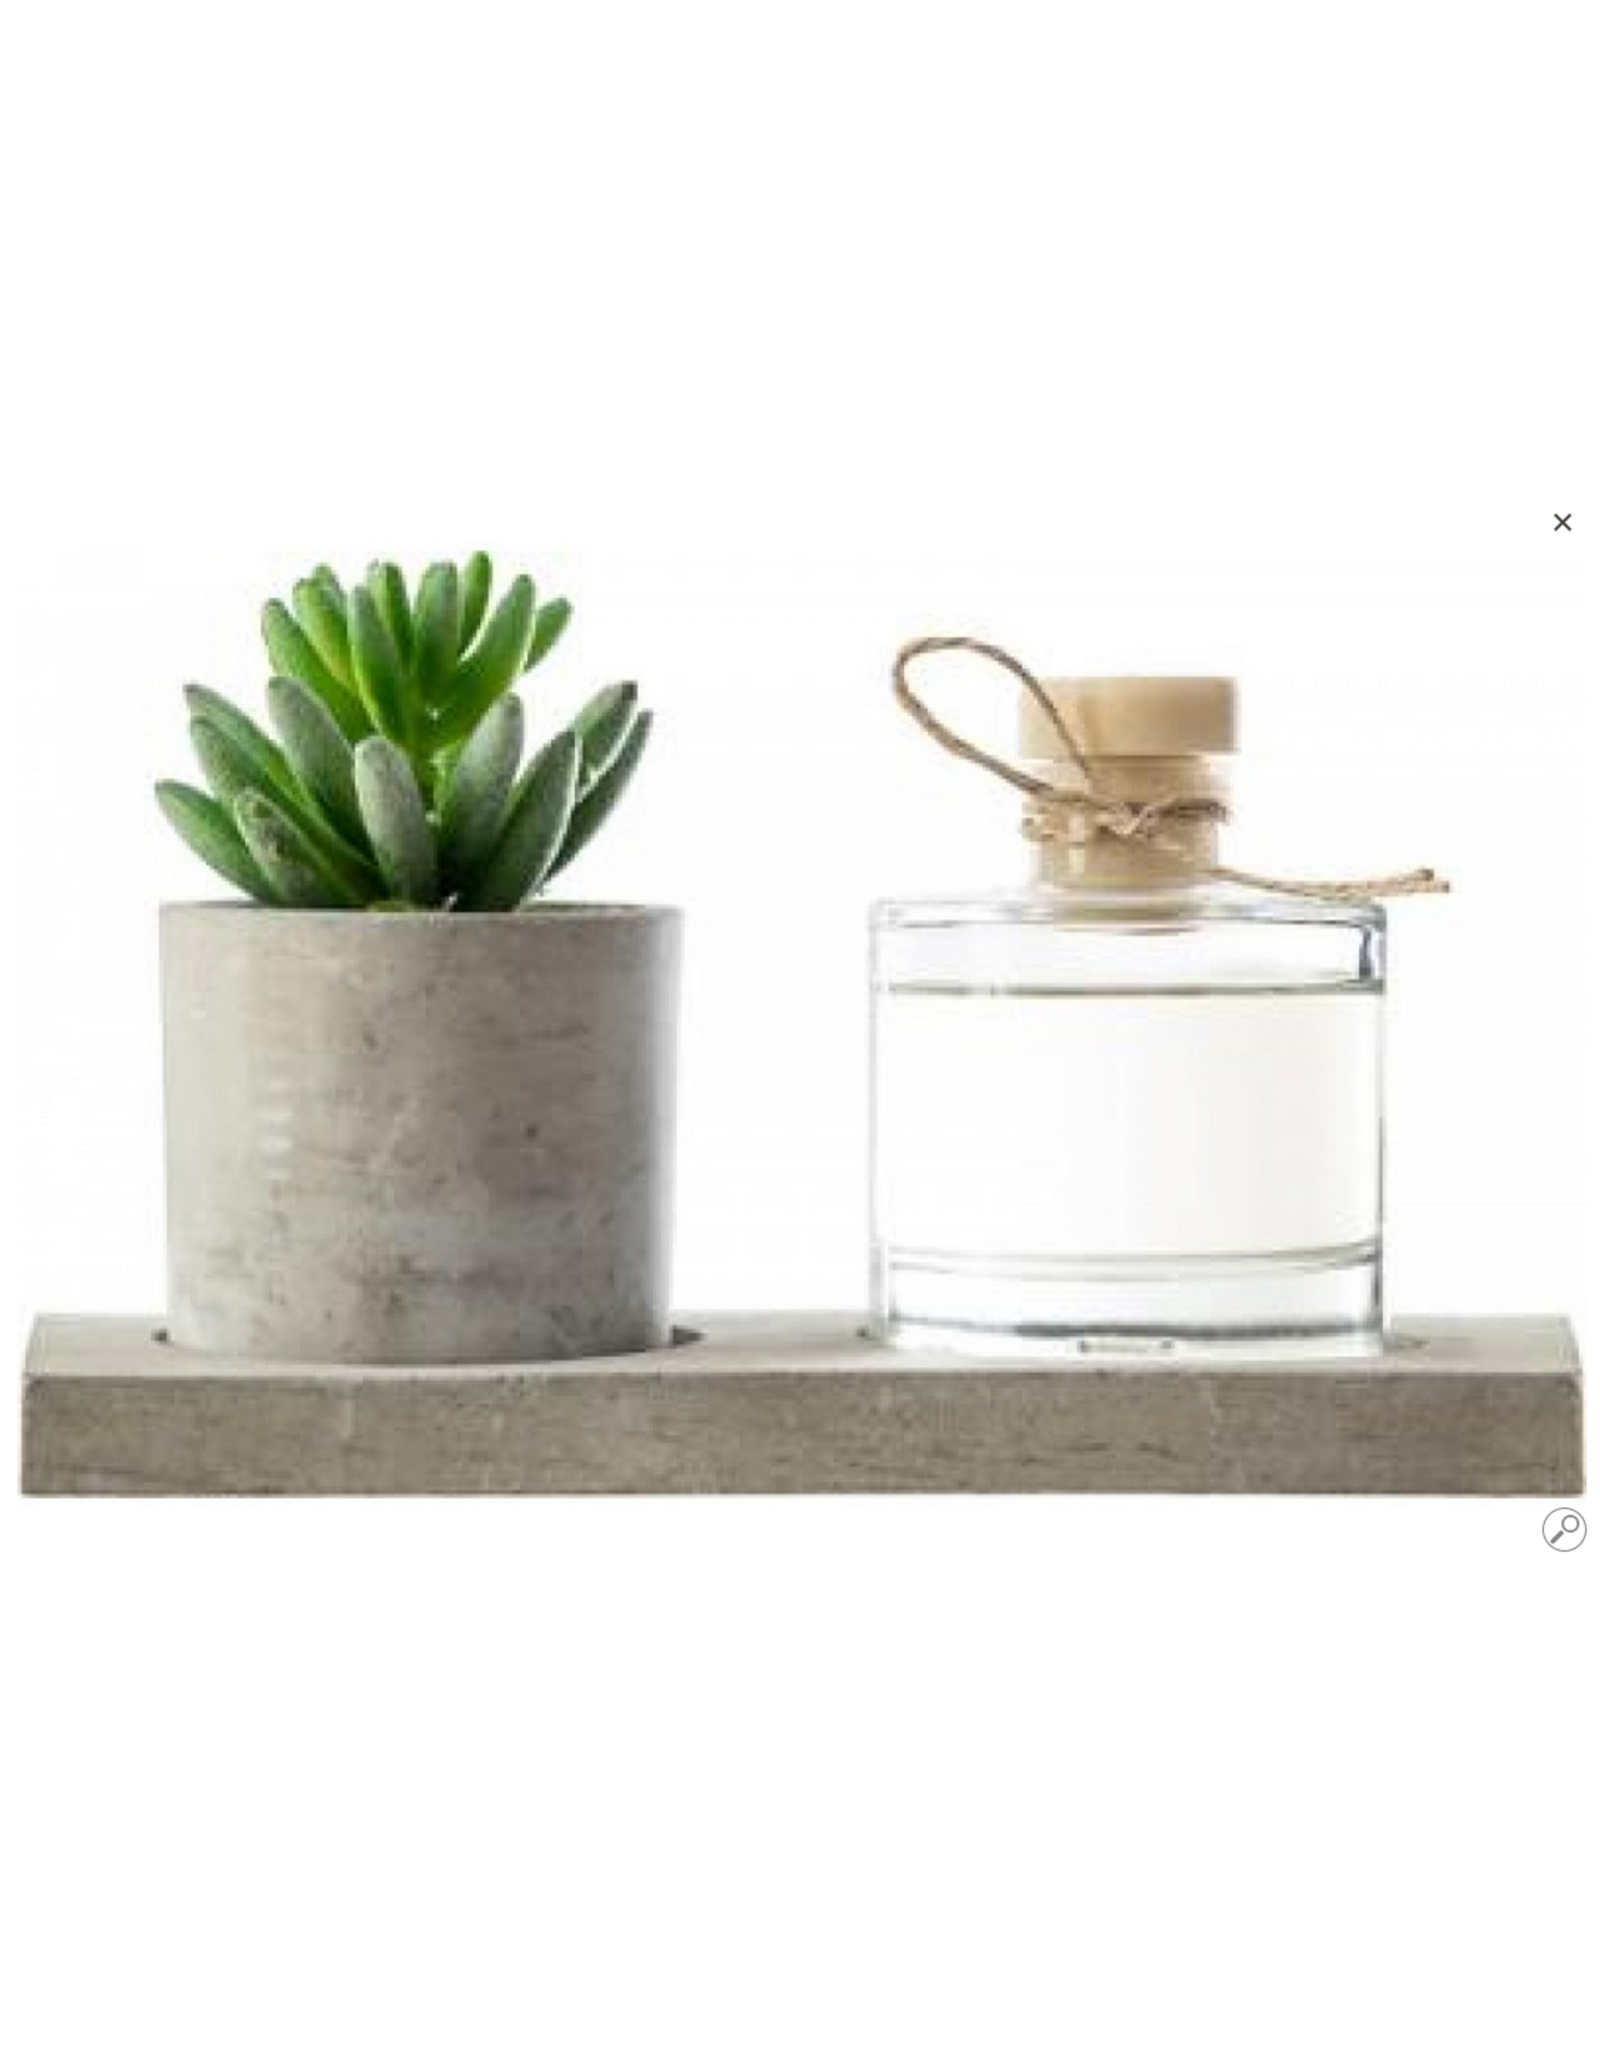 LOFT030 PLANTE SCENTED GIFT SET